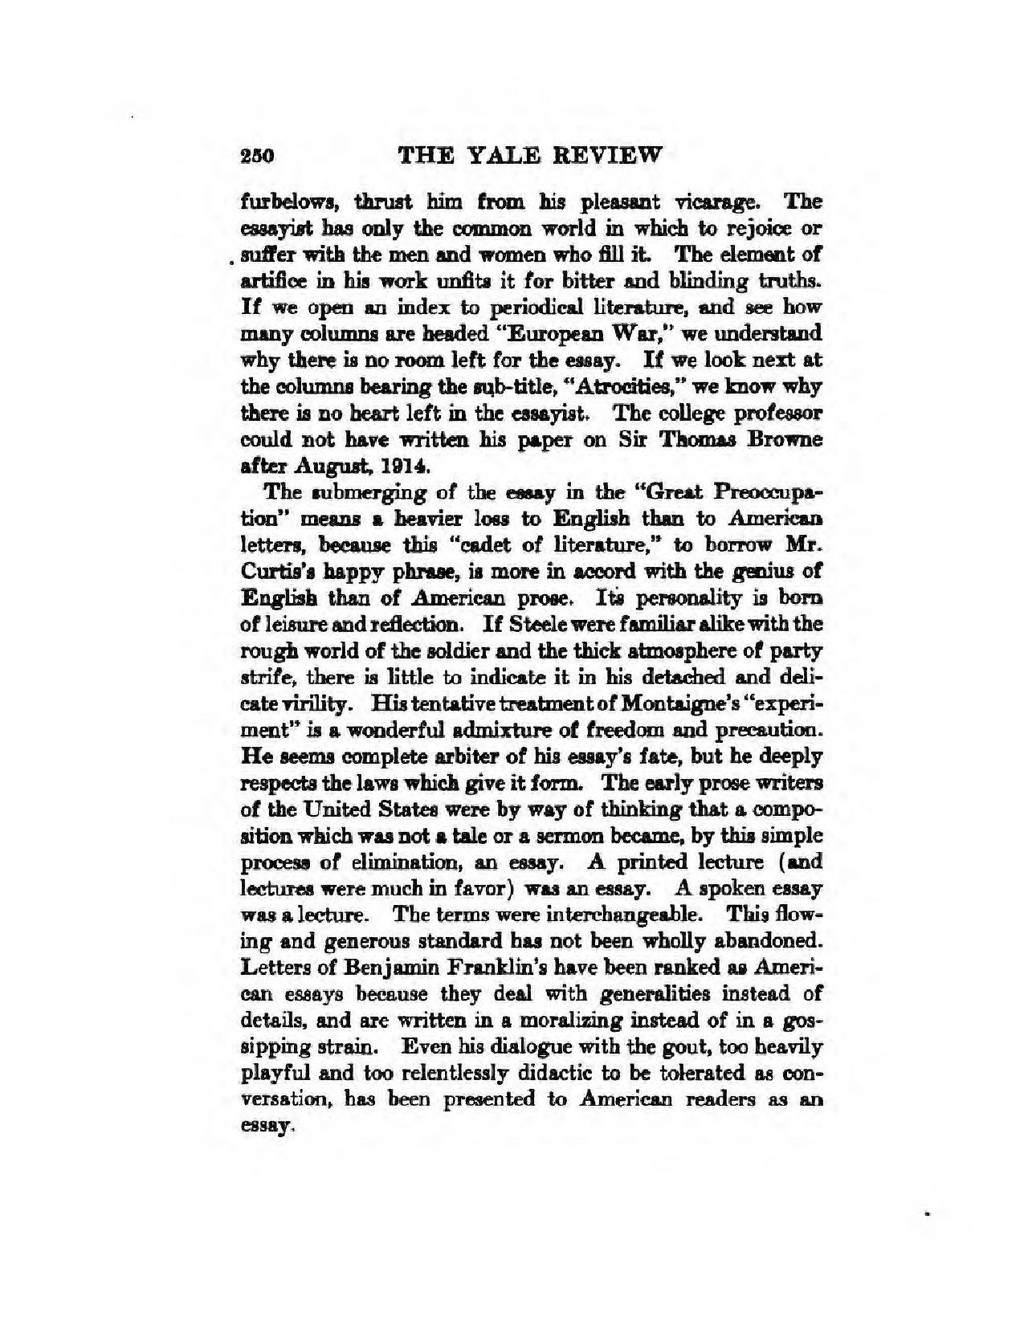 007 Essay Example What Is An American Page2 1024px The In War Time2c Agnes Repplier2c 1918 Stupendous Ideas Definition Crevecoeur Summary Large